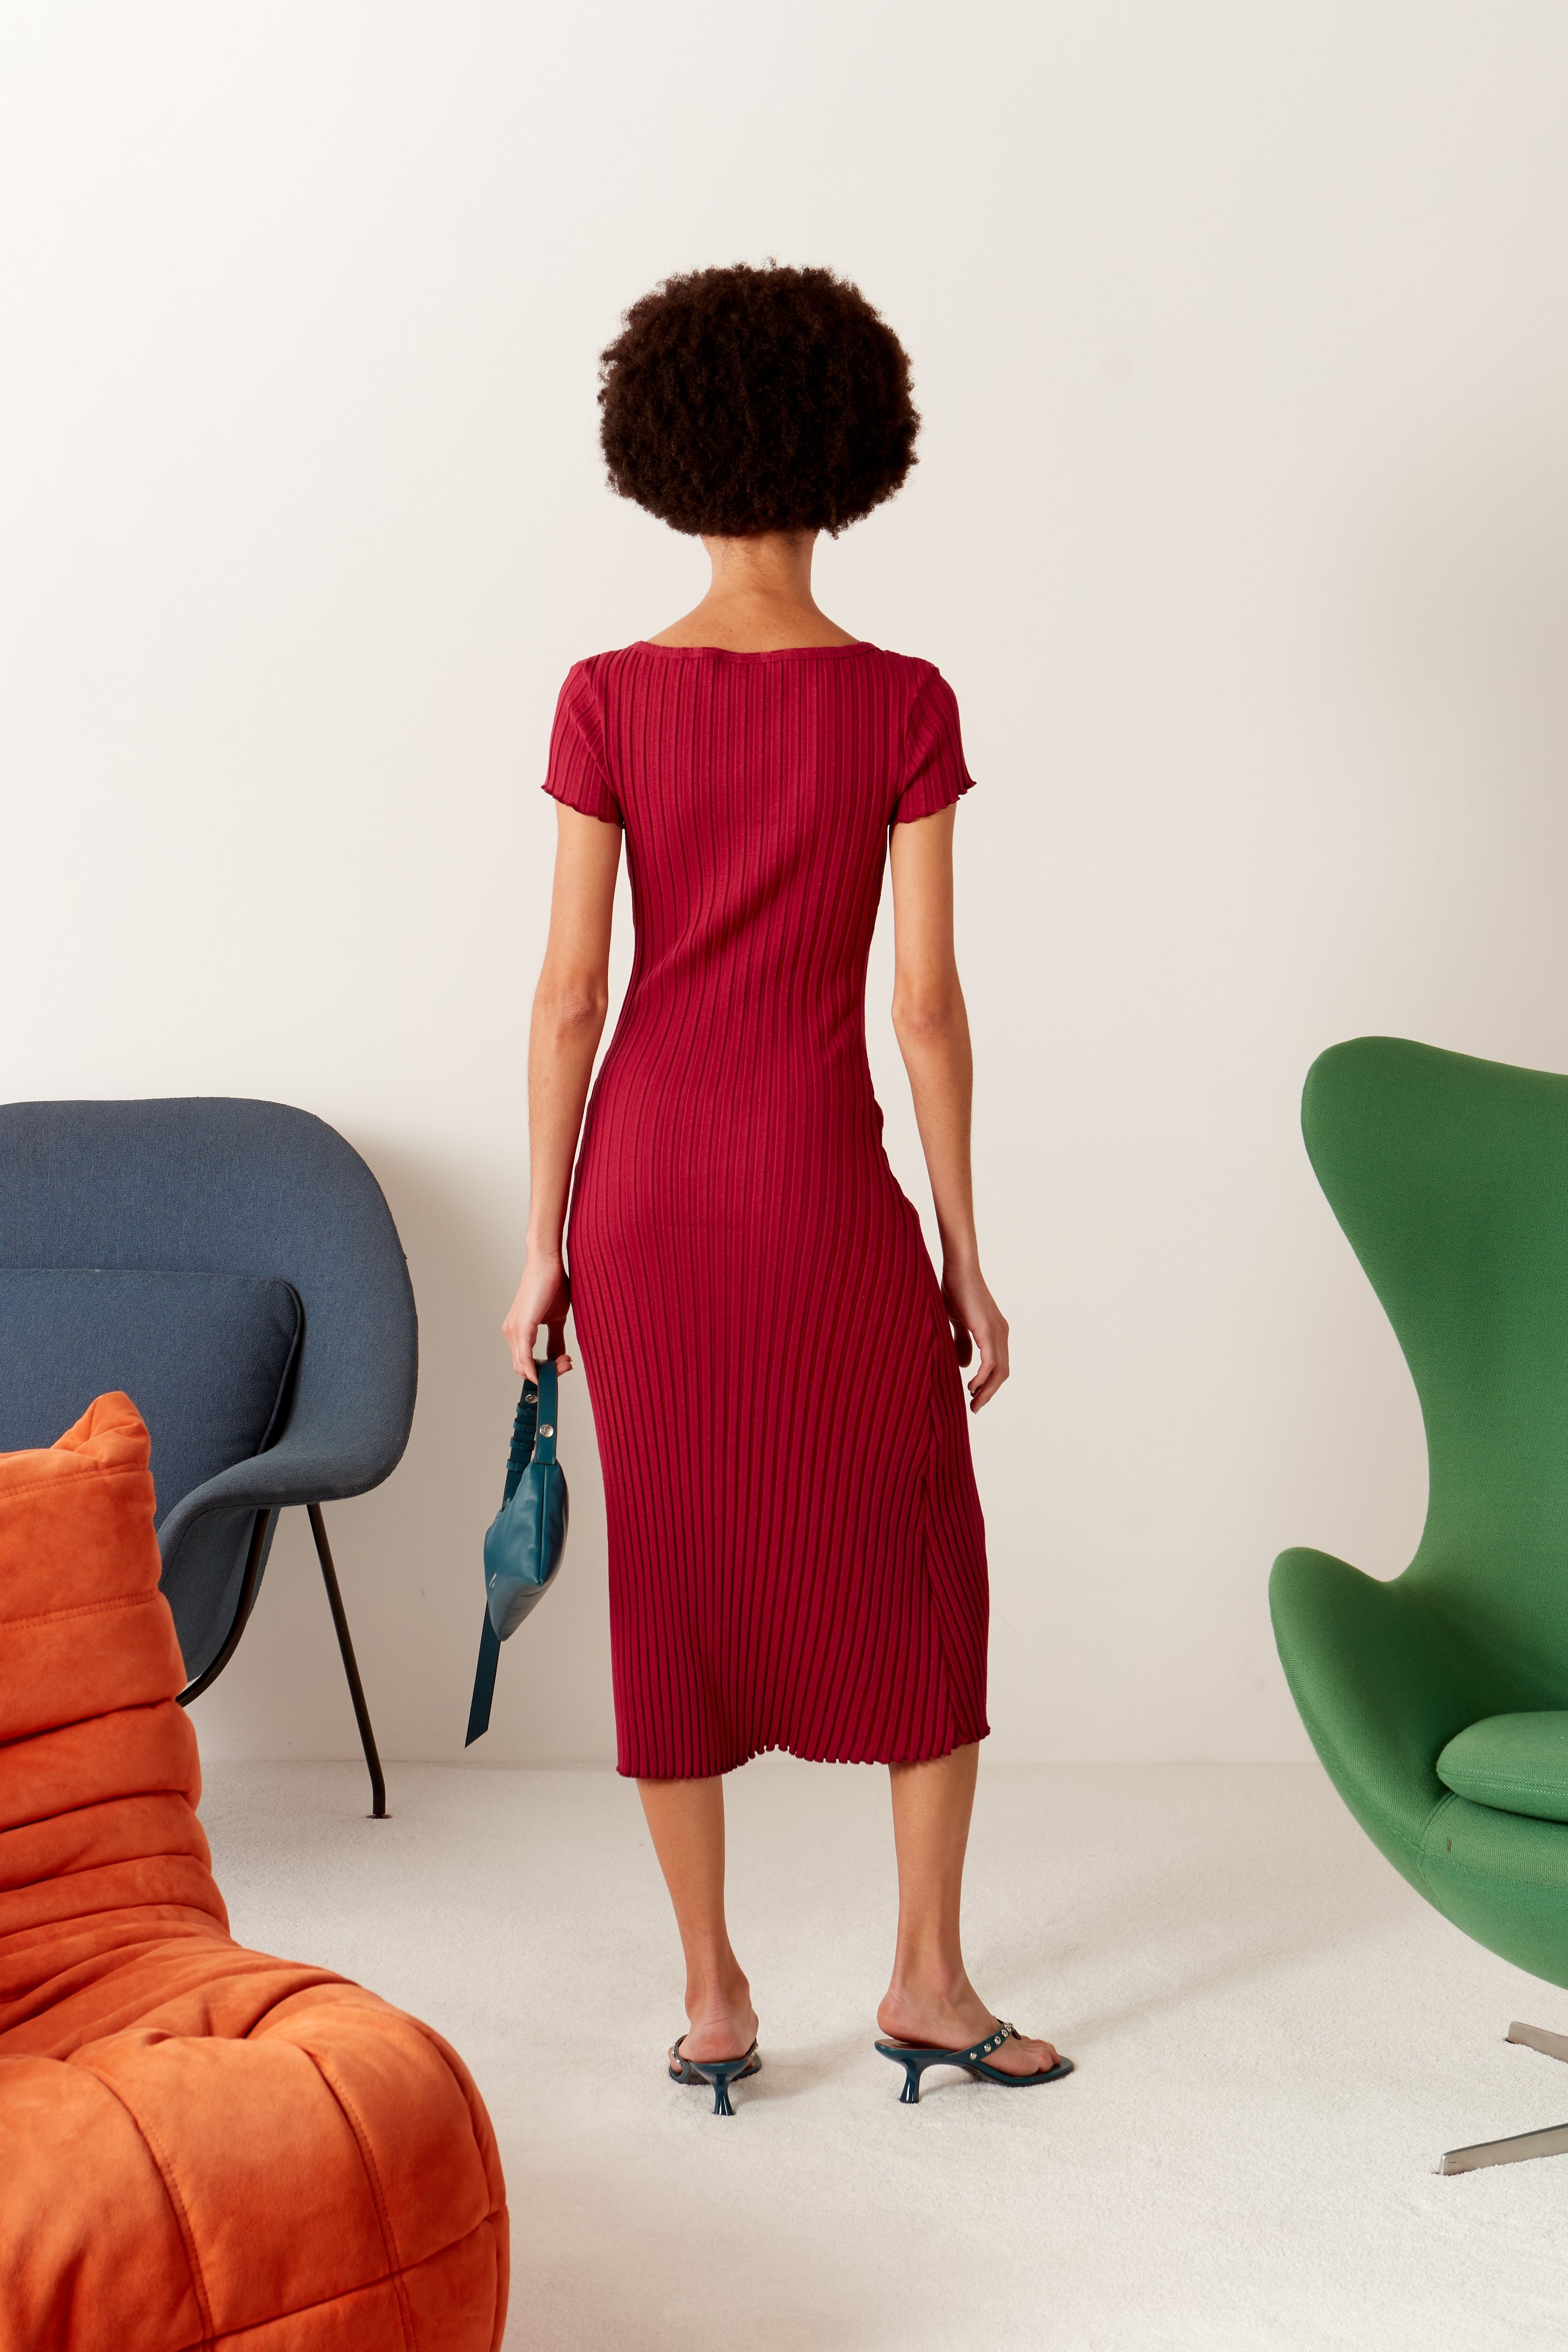 RIB Andros Dress in Rumba Red by Simon Miller - 5